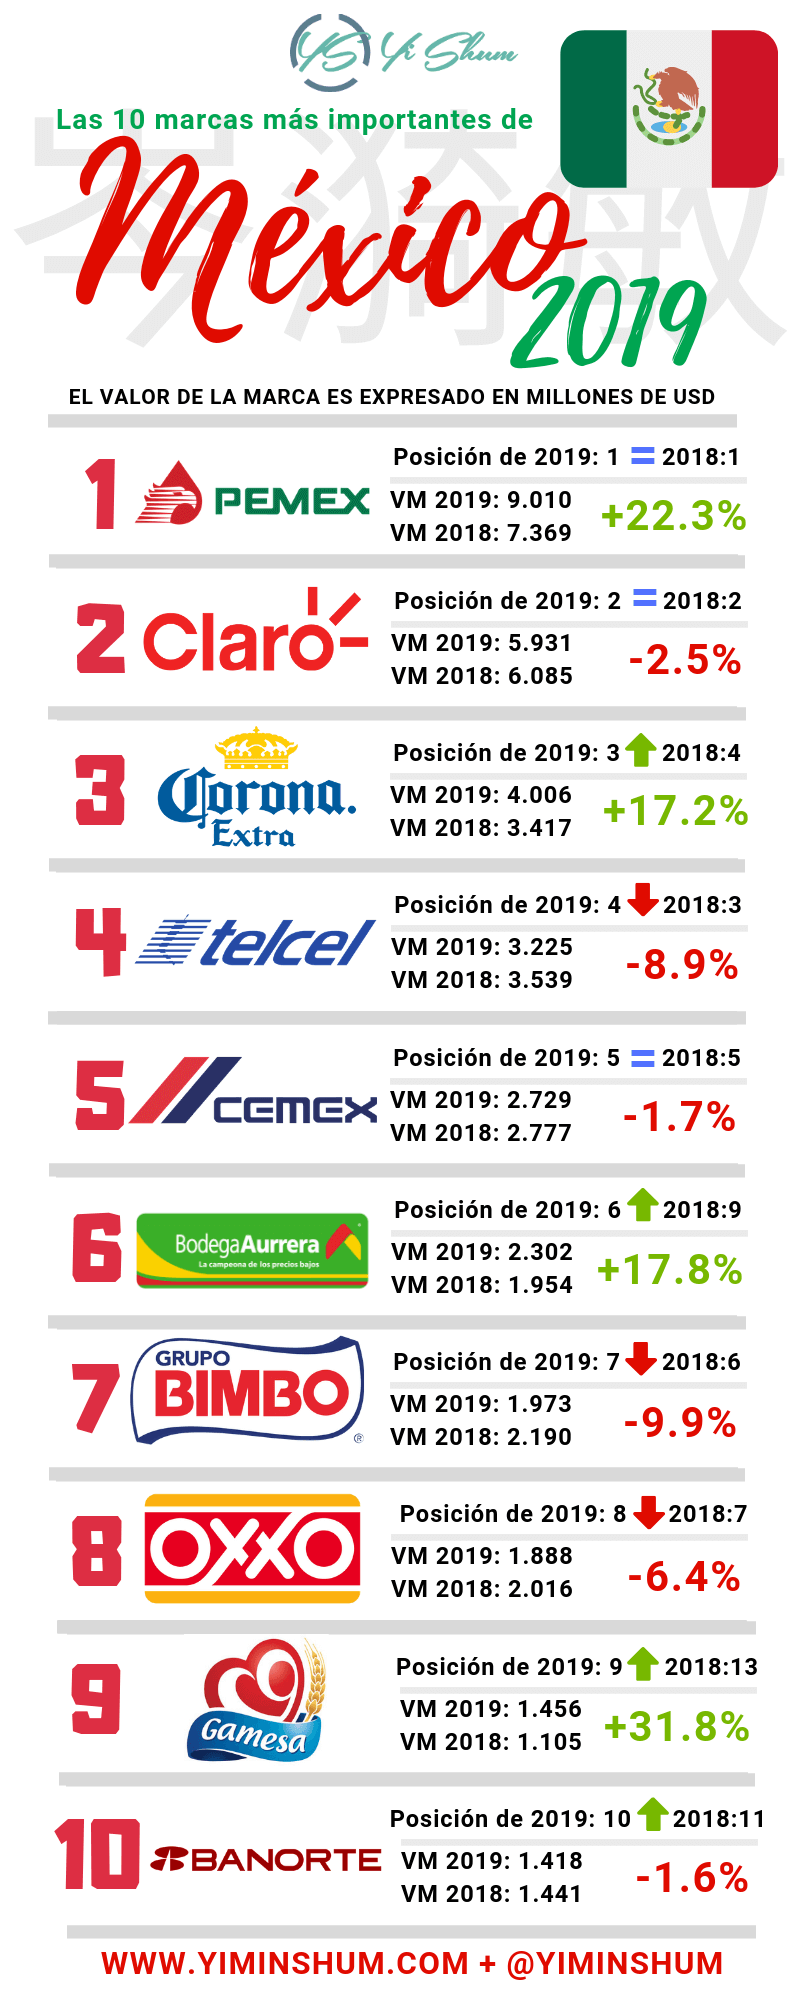 10 marcas más importantes de México #infografia #infographic #marketing